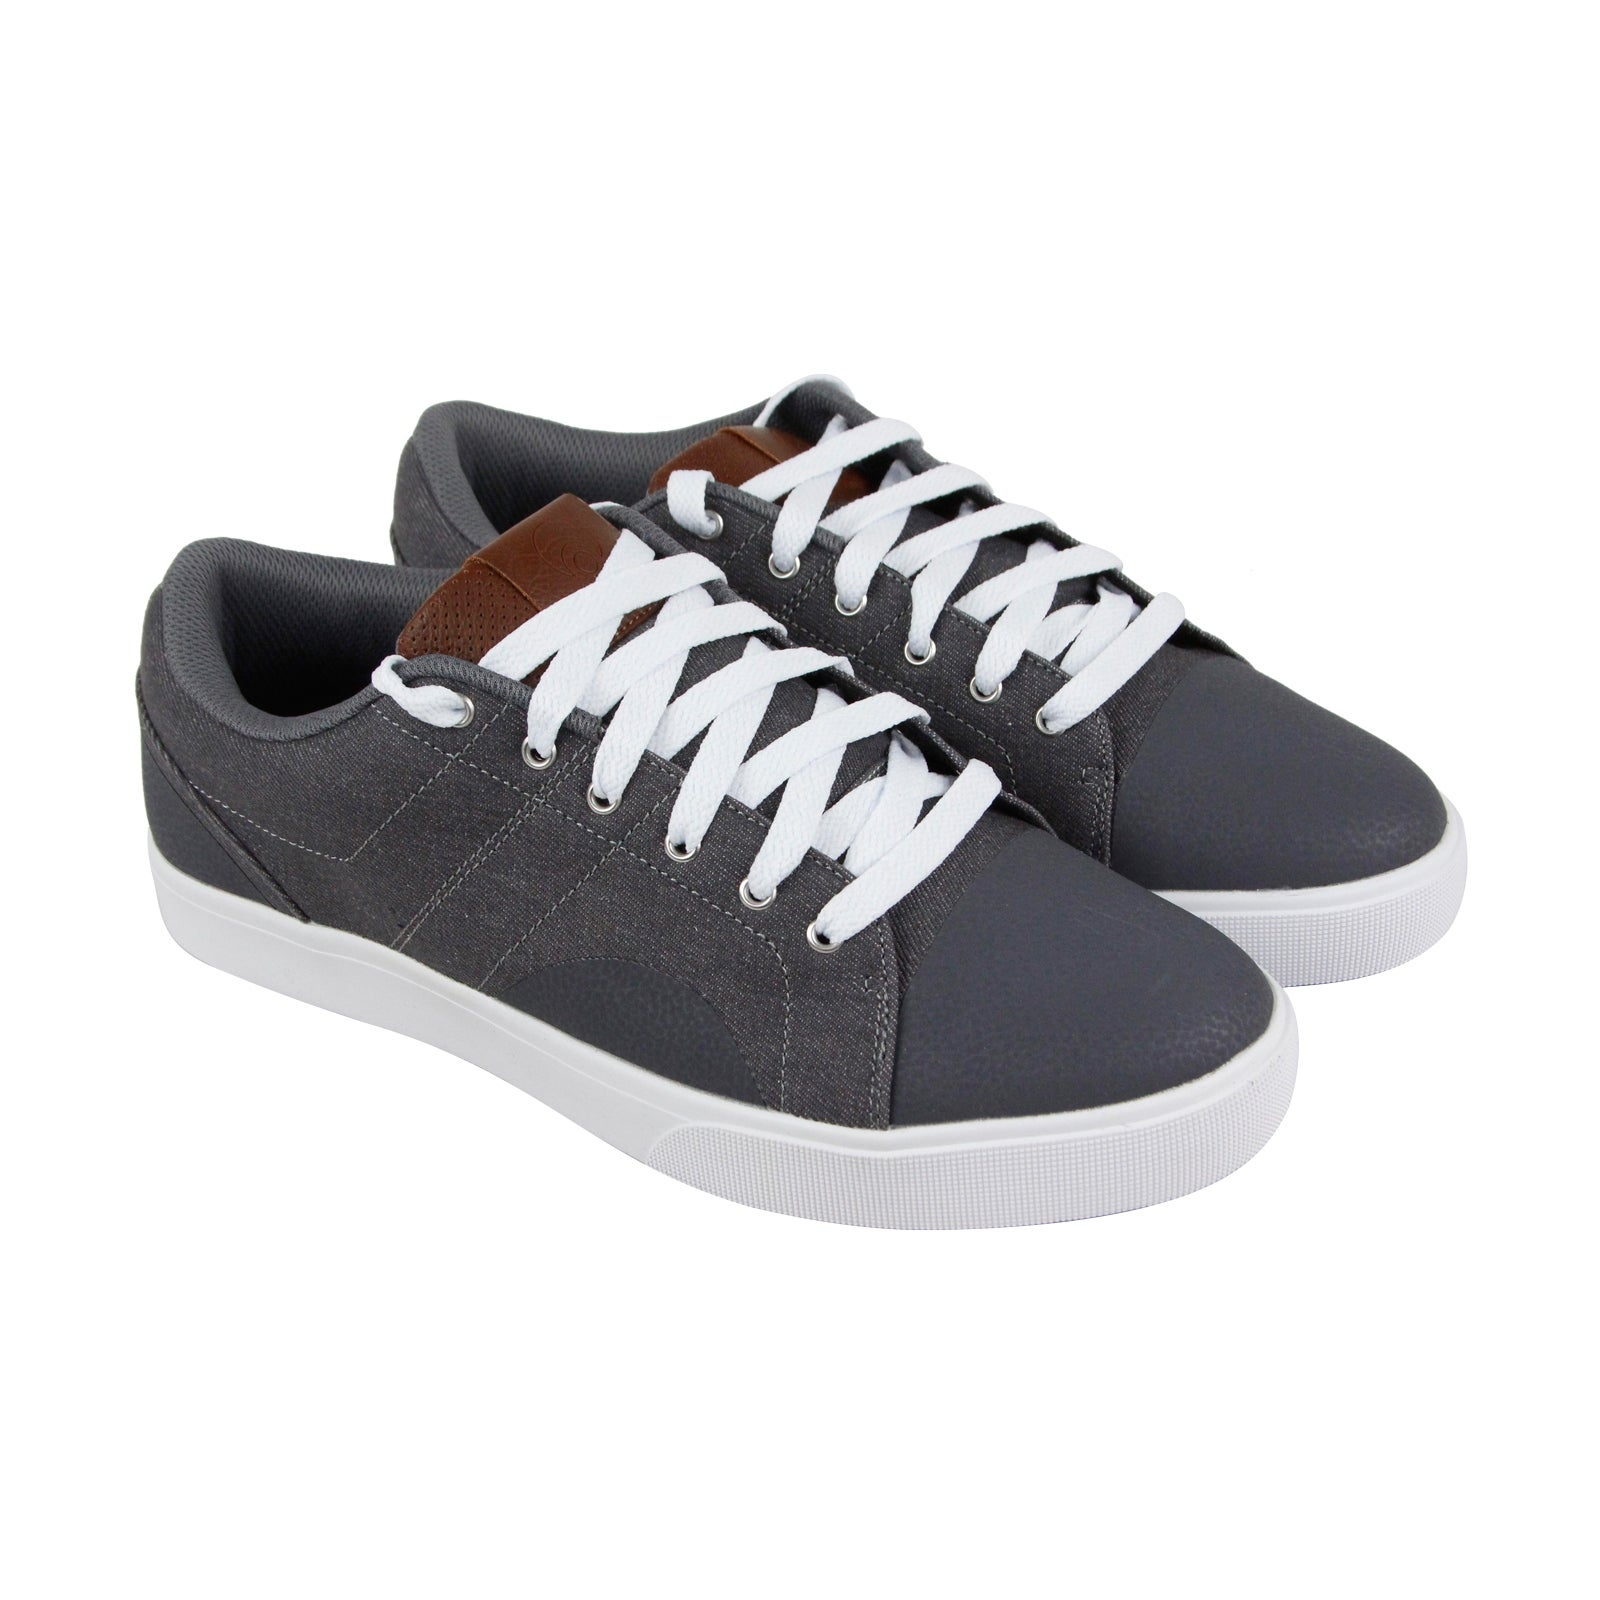 85073ea6a5441 Osiris Shoes | Shop our Best Clothing & Shoes Deals Online at Overstock